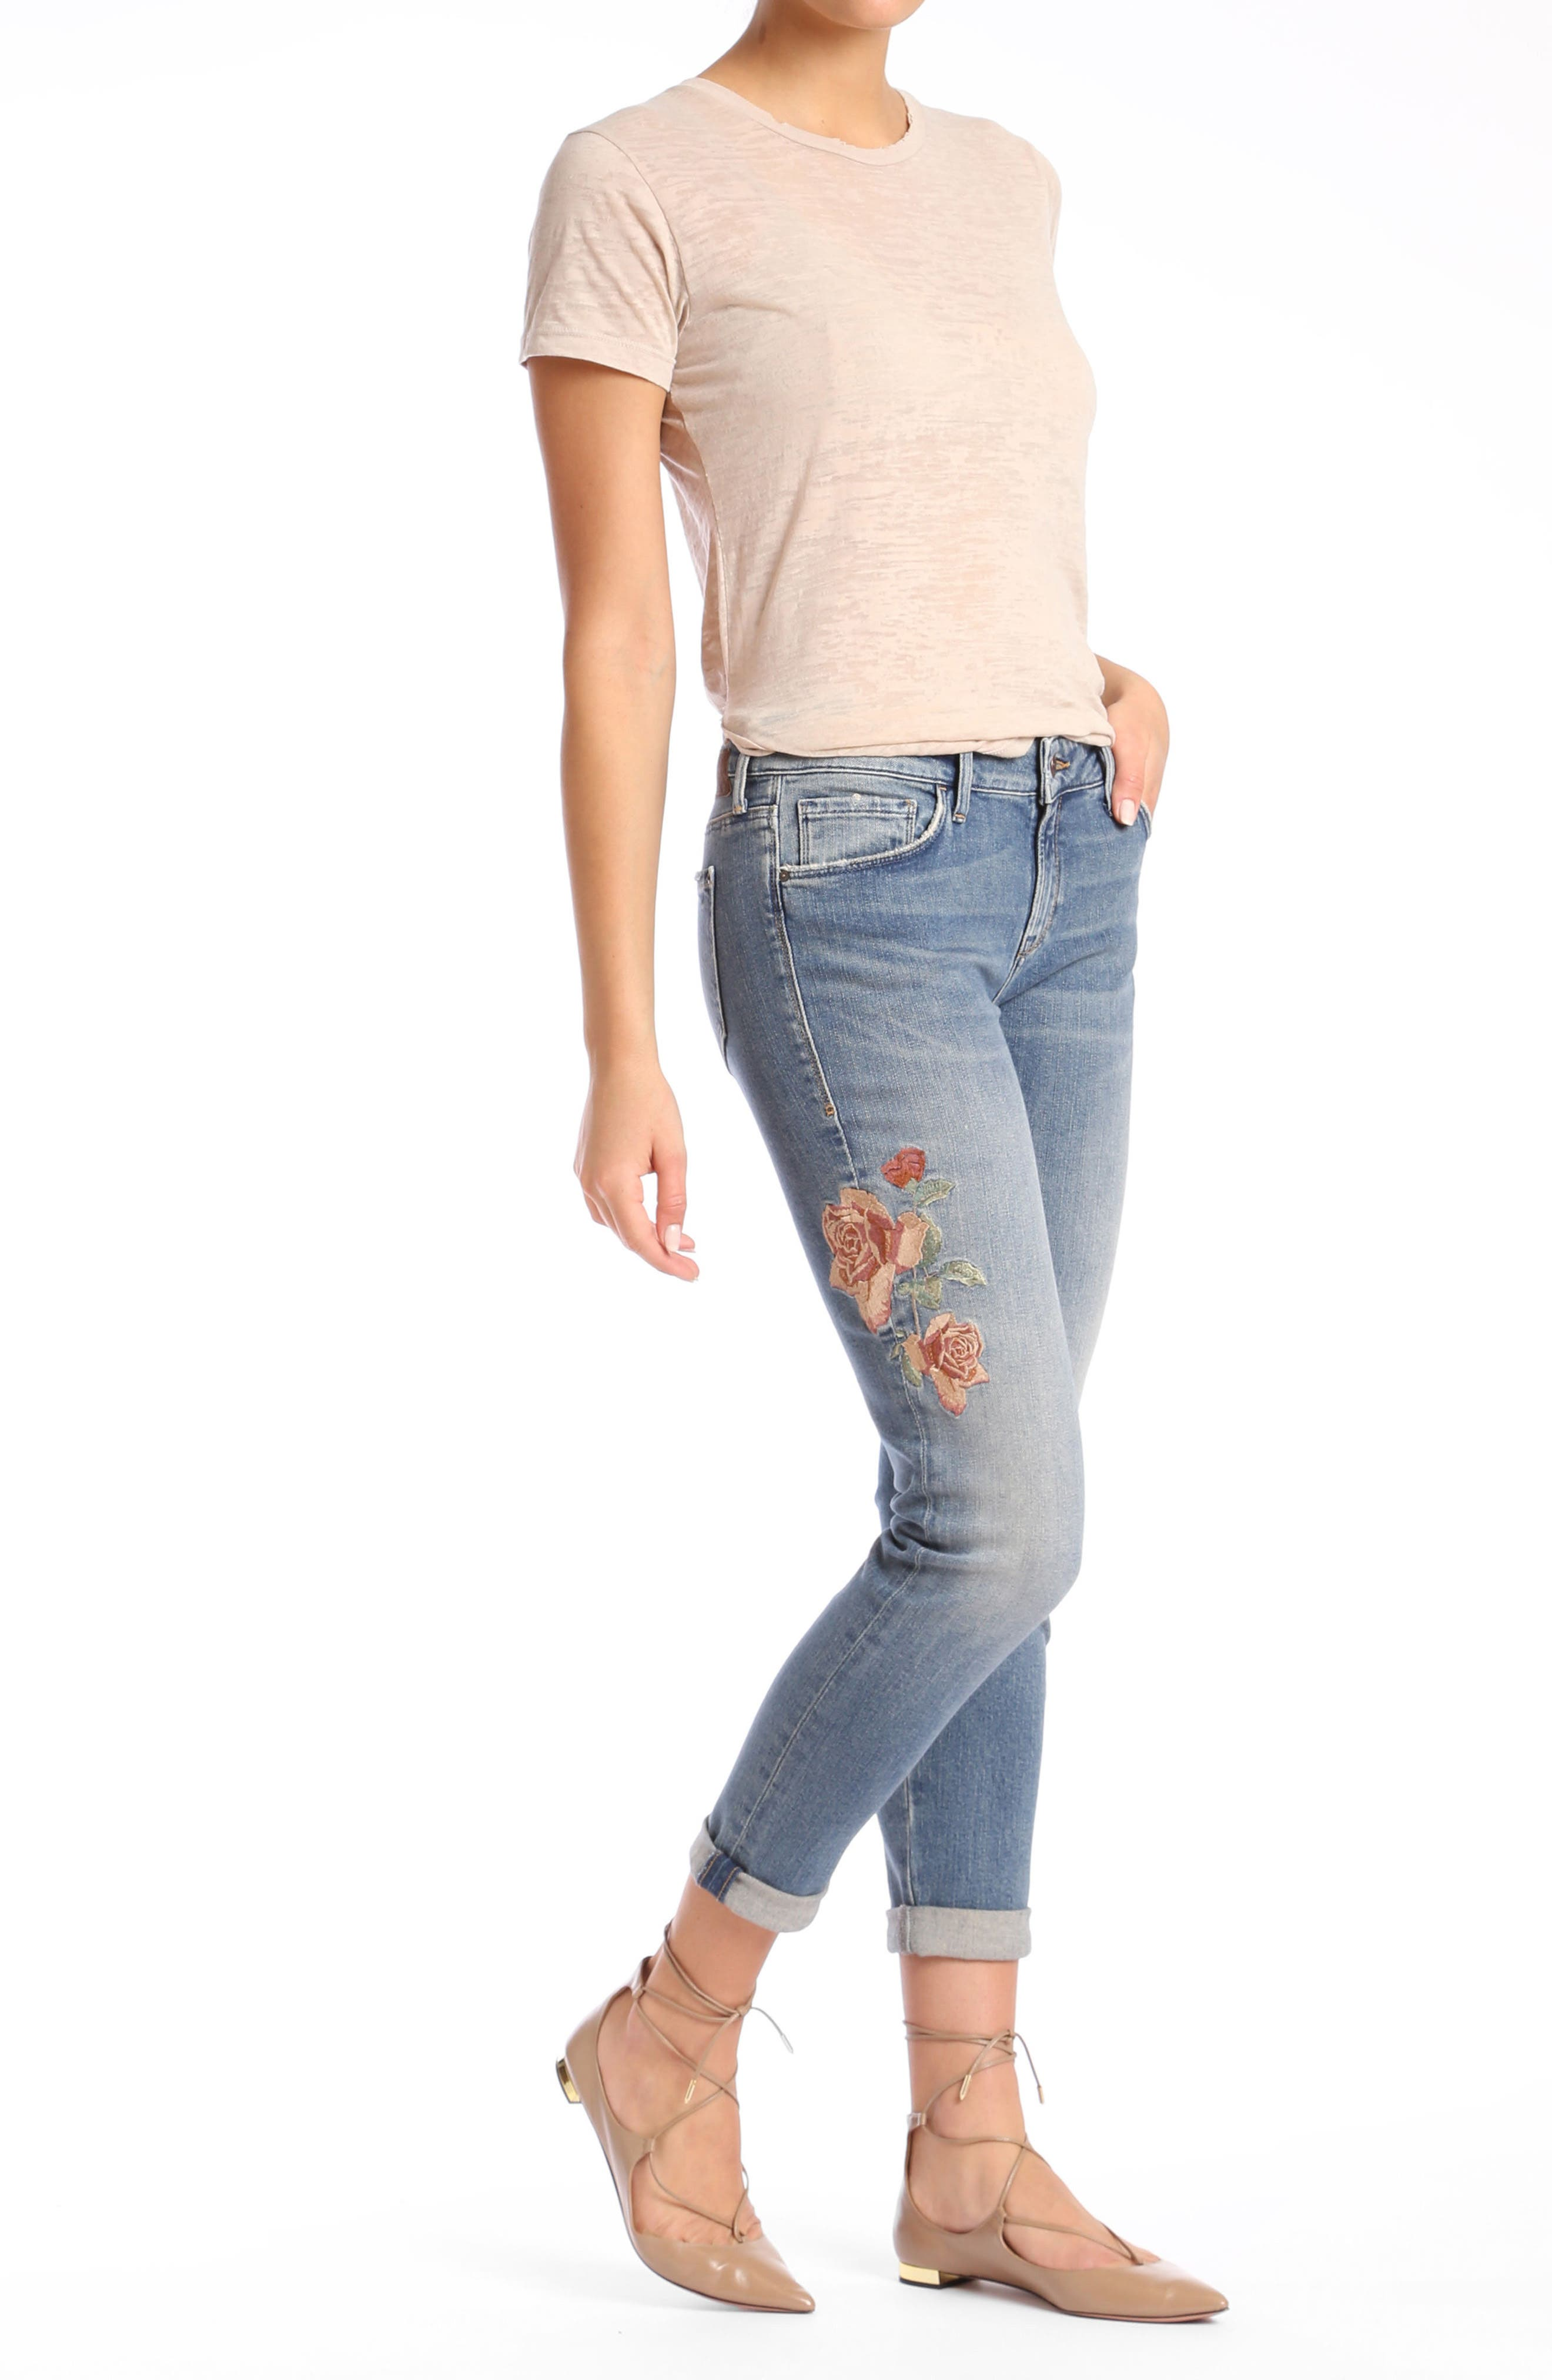 Ada Embroidered Boyfriend Jeans,                             Alternate thumbnail 4, color,                             Mid Rose Embroidery